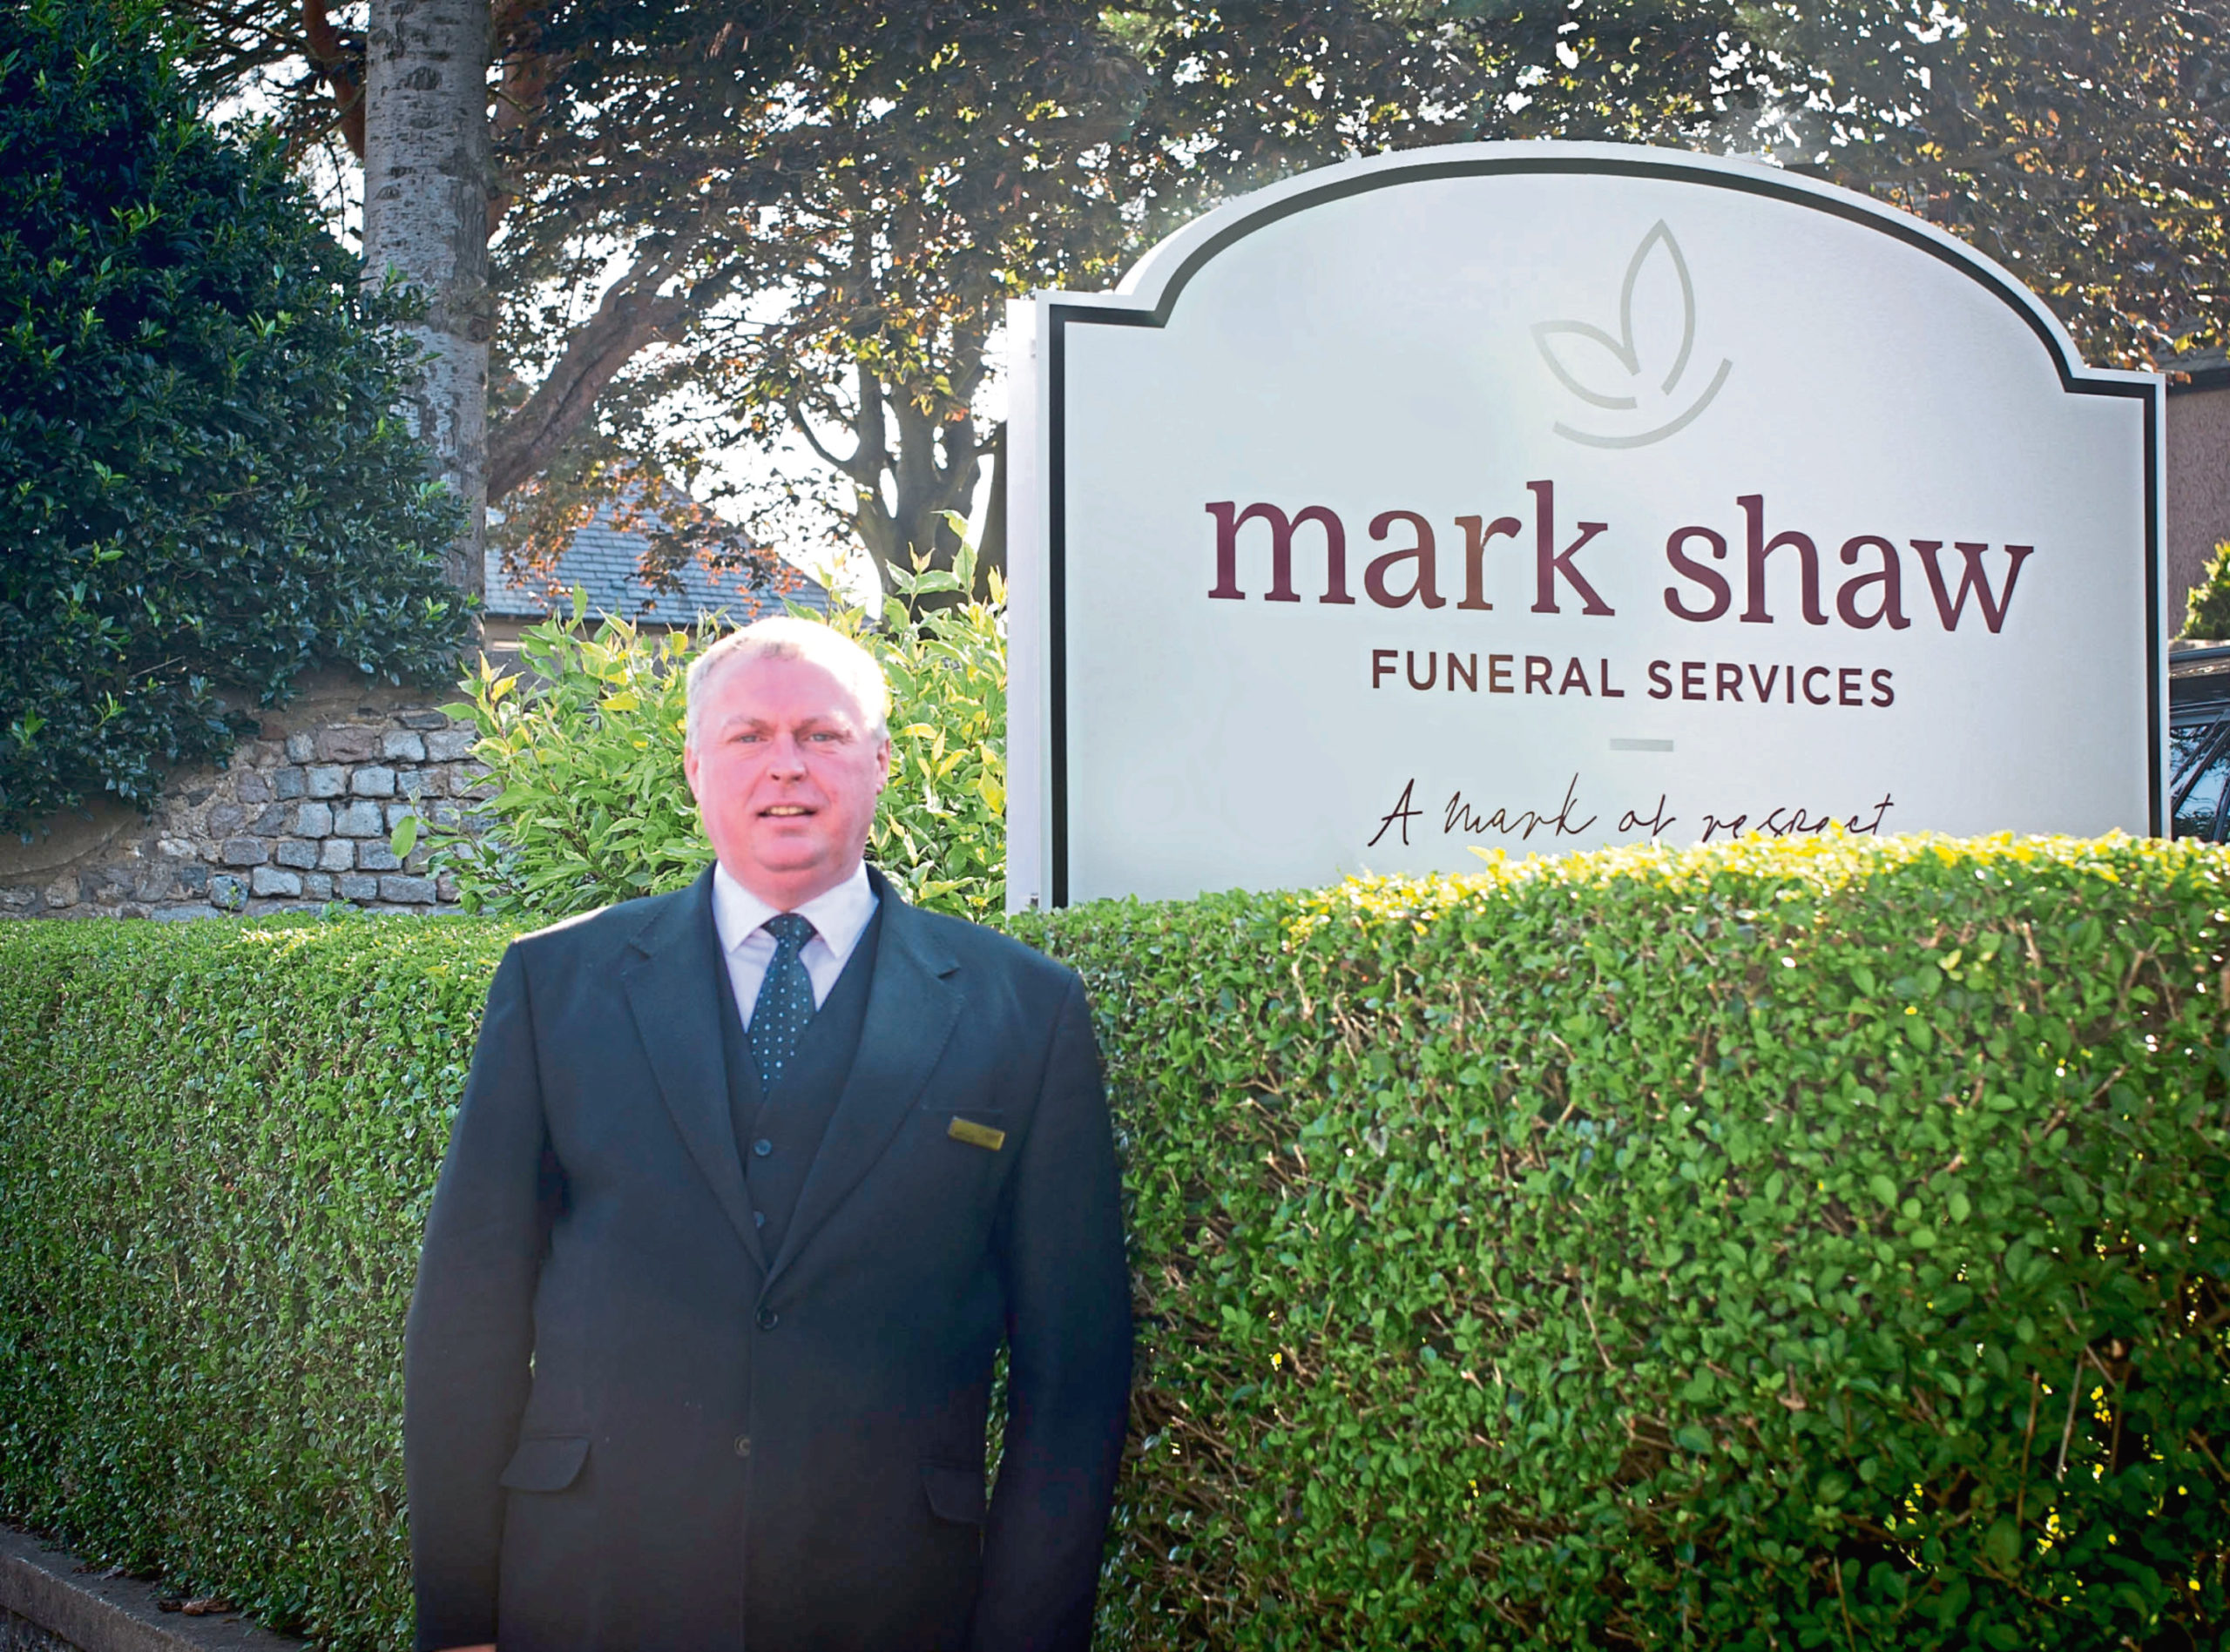 Funeral director Mark Shaw said the coronavirus pandemic has left families facing difficult decisions